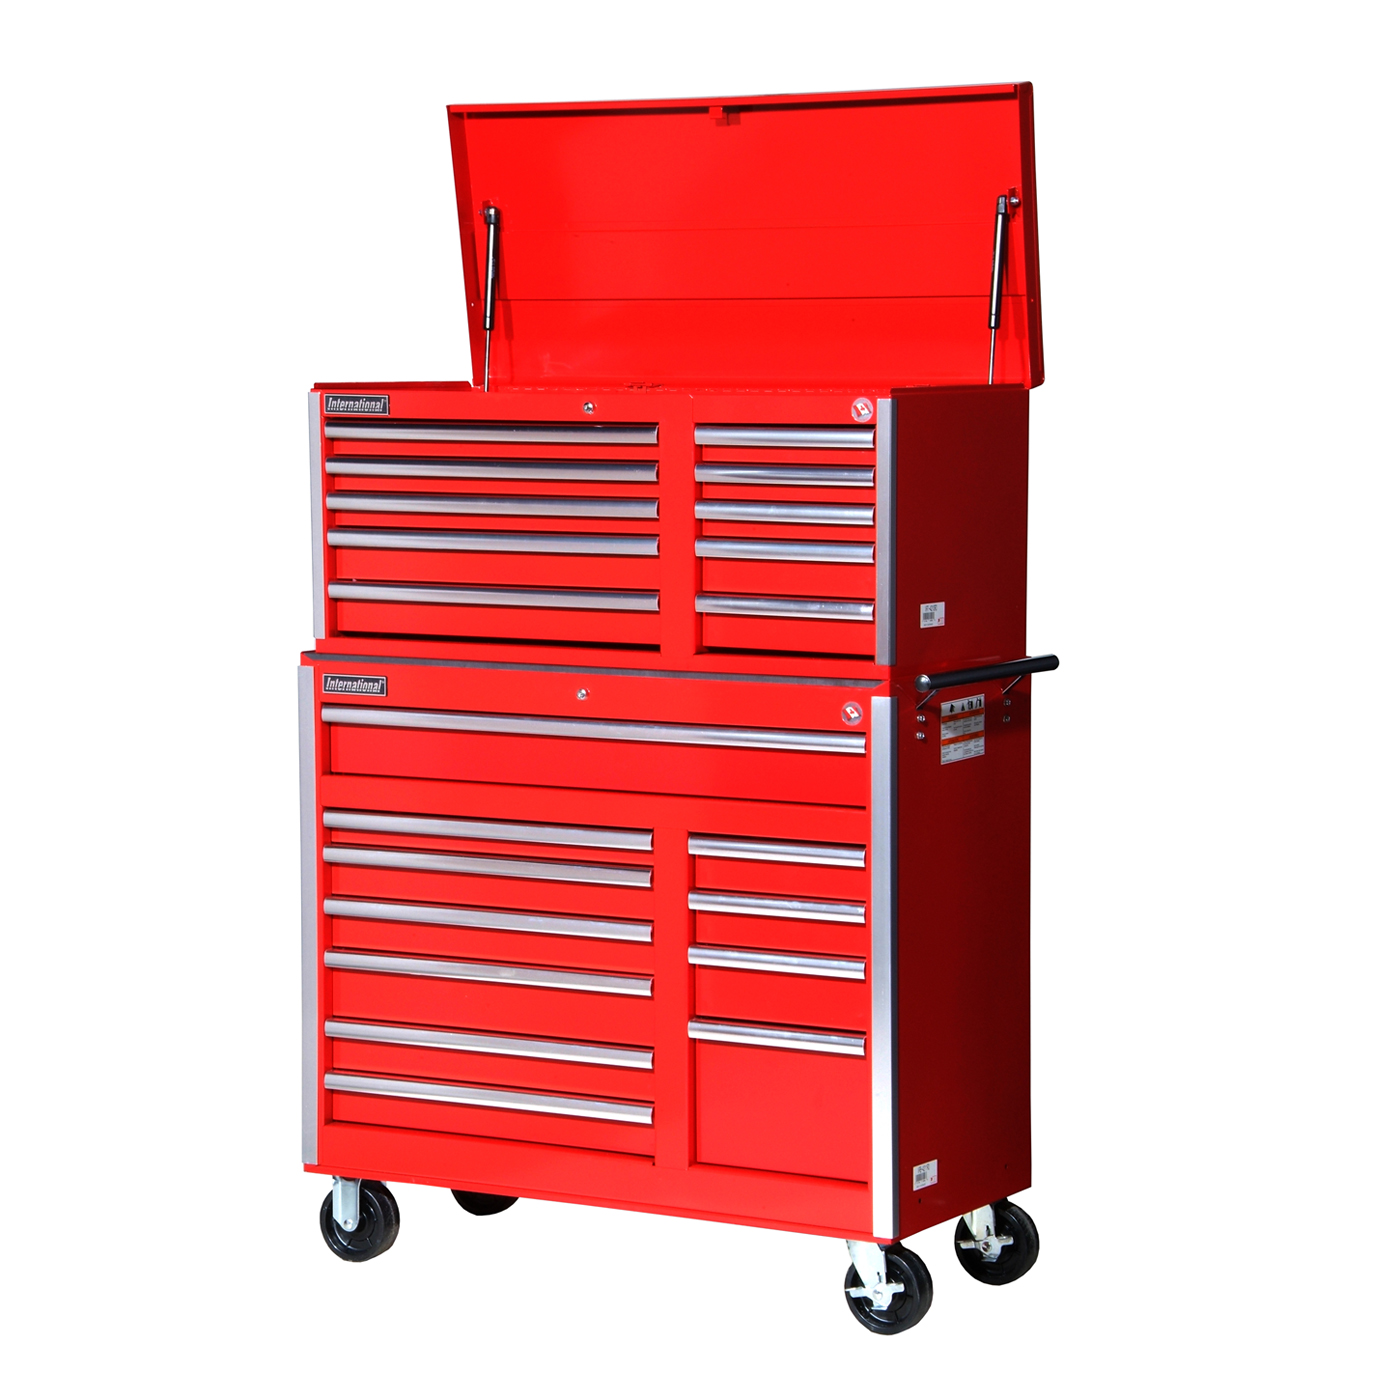 International 2-Piece Value Series 42-in Wide Combo Tool Chest Set